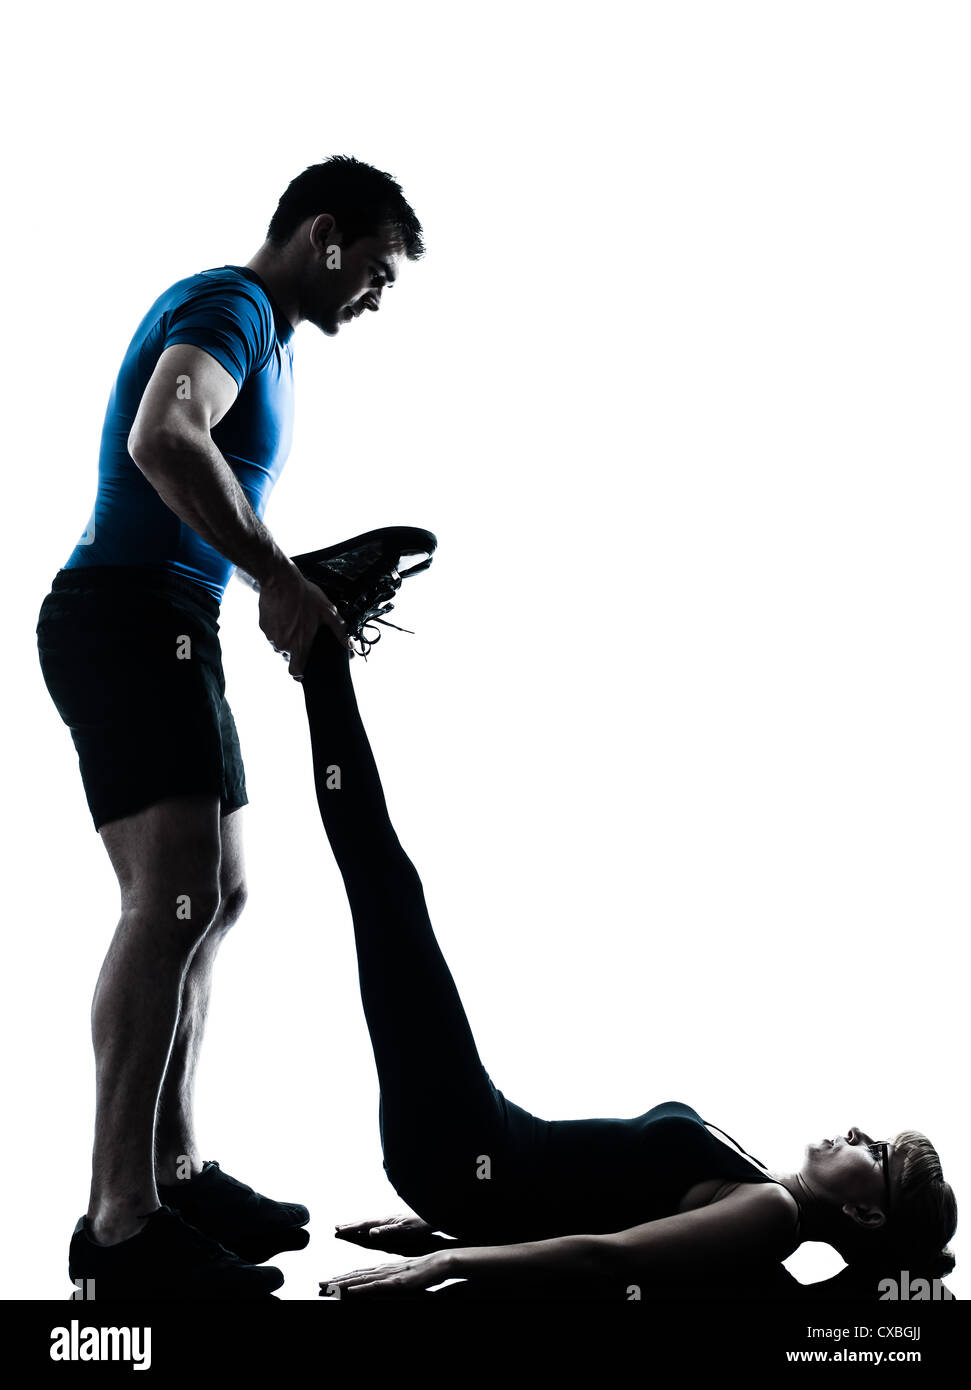 caucasian aerobics instructor  with mature woman exercising fitness workout in silhouette studio isolated on white Stock Photo